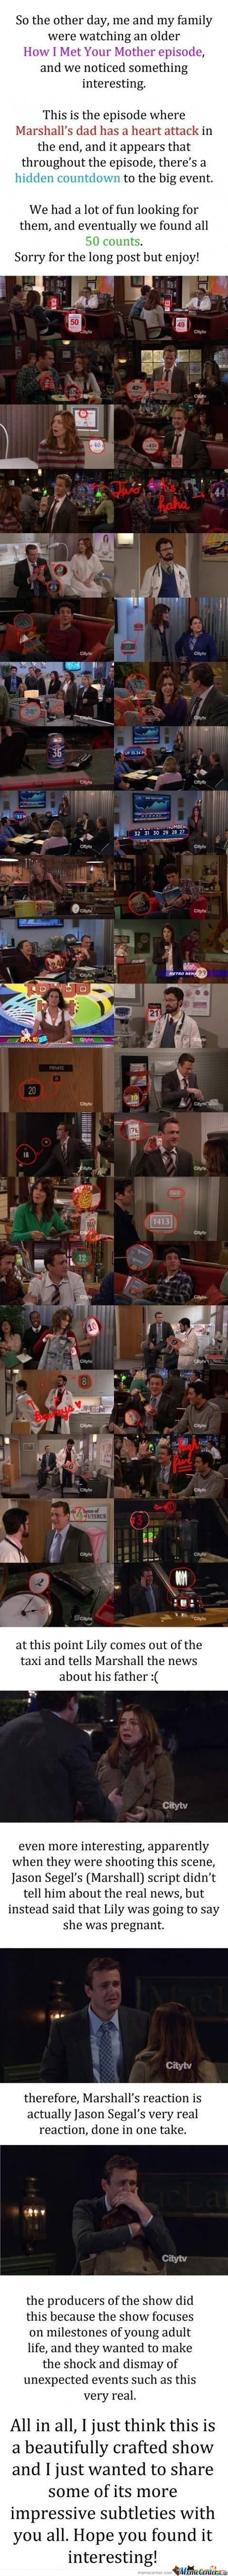 How I met your mother countdown I caught most of them while watching